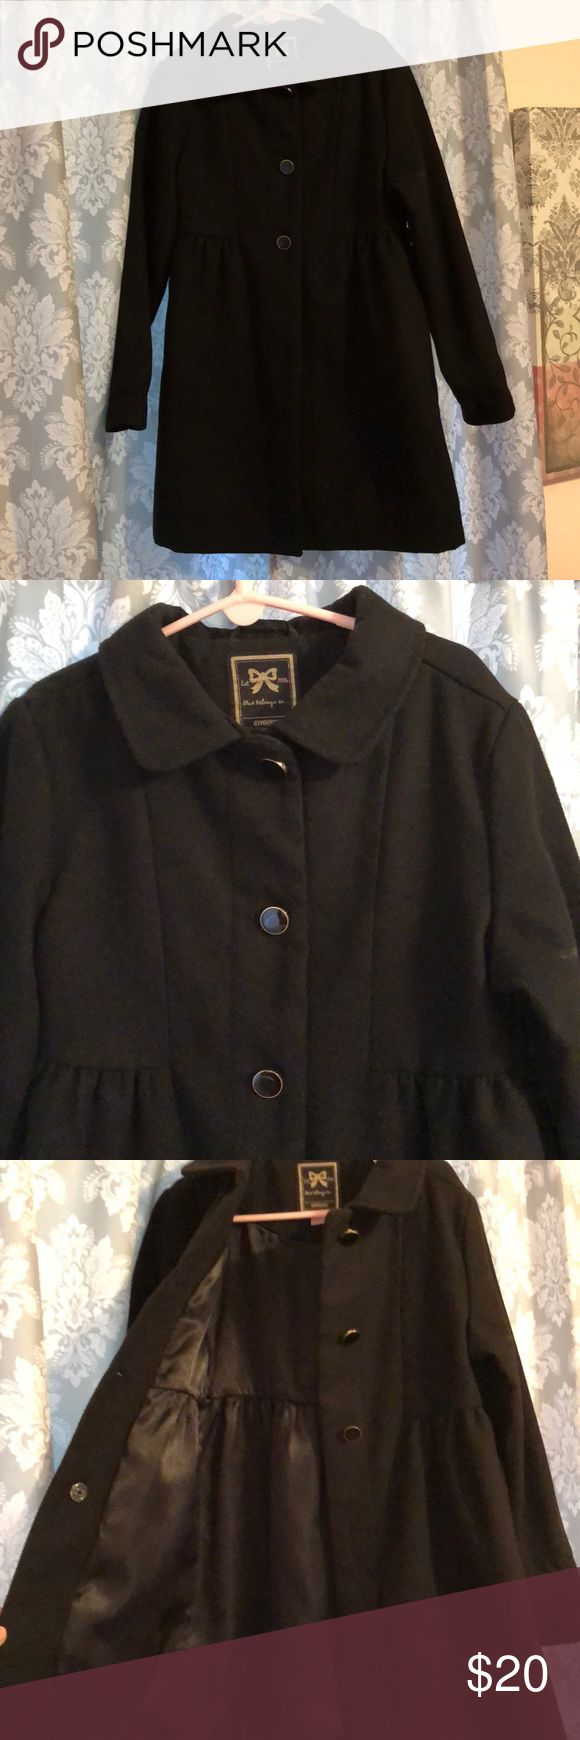 Kids Black Peacoat Black girls peacoat. Size 7/8. Hardly worn. Silk lining, 3 buttons with small collar. Still in great condition! Gymboree Jackets & Coats Pea Coats